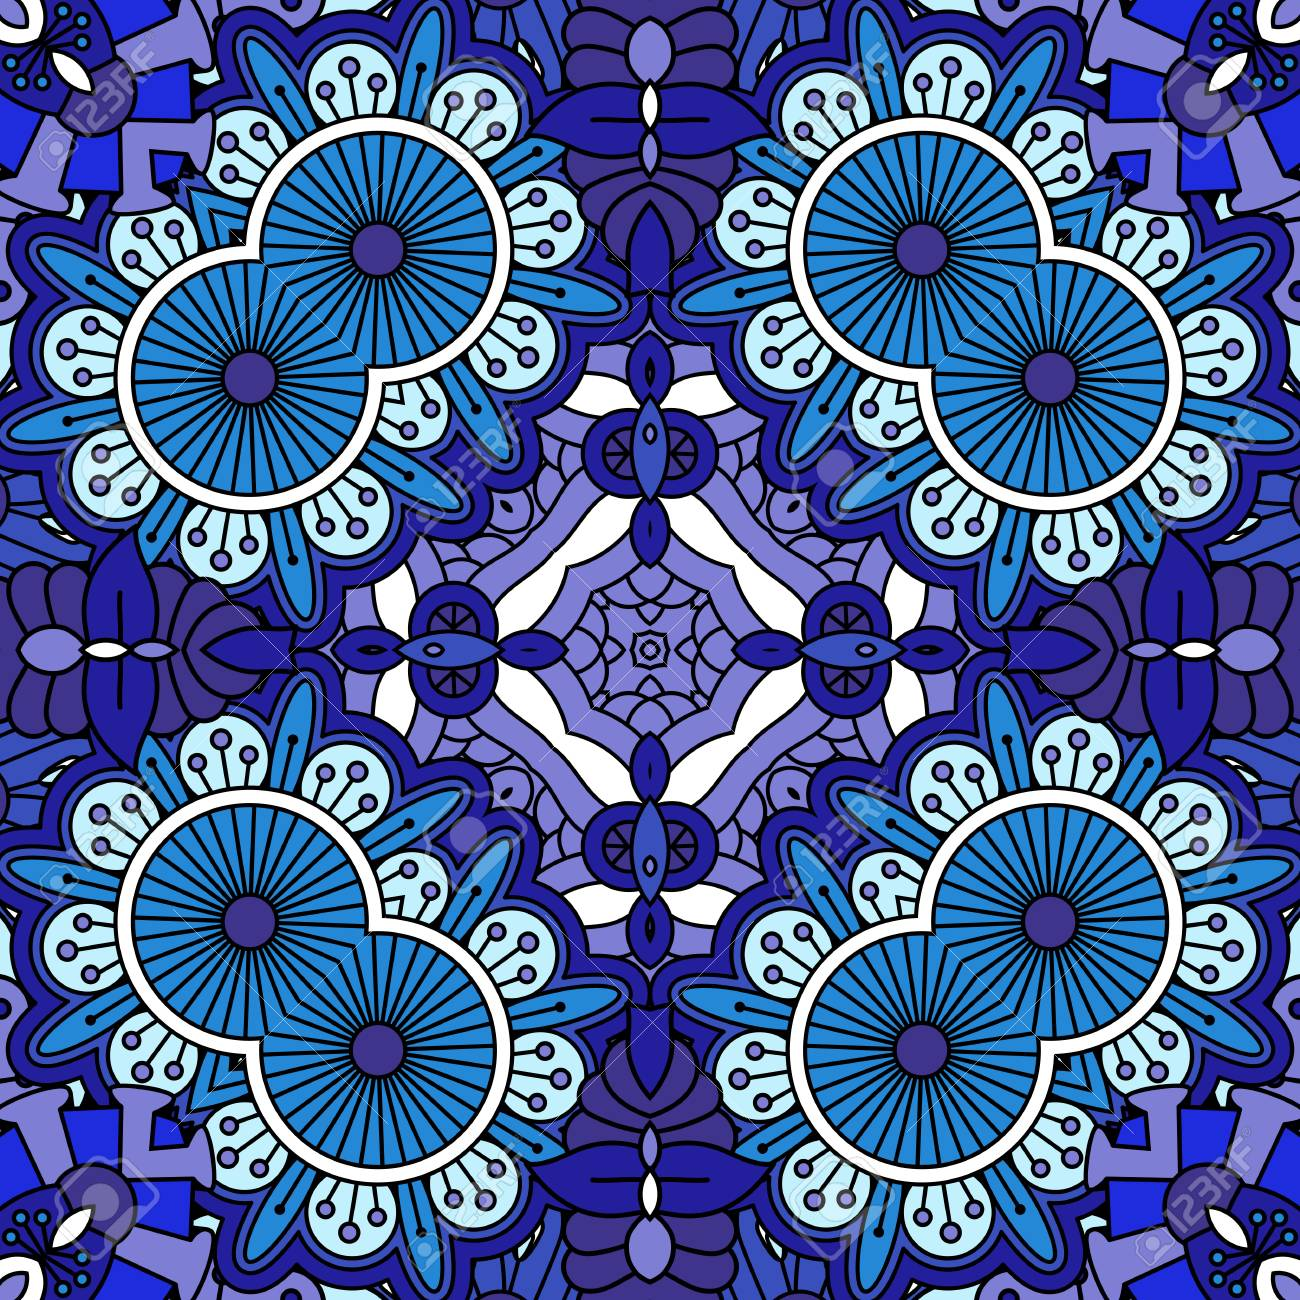 Intricate Geometric Blue And Purple Symmetrical Pattern With ...